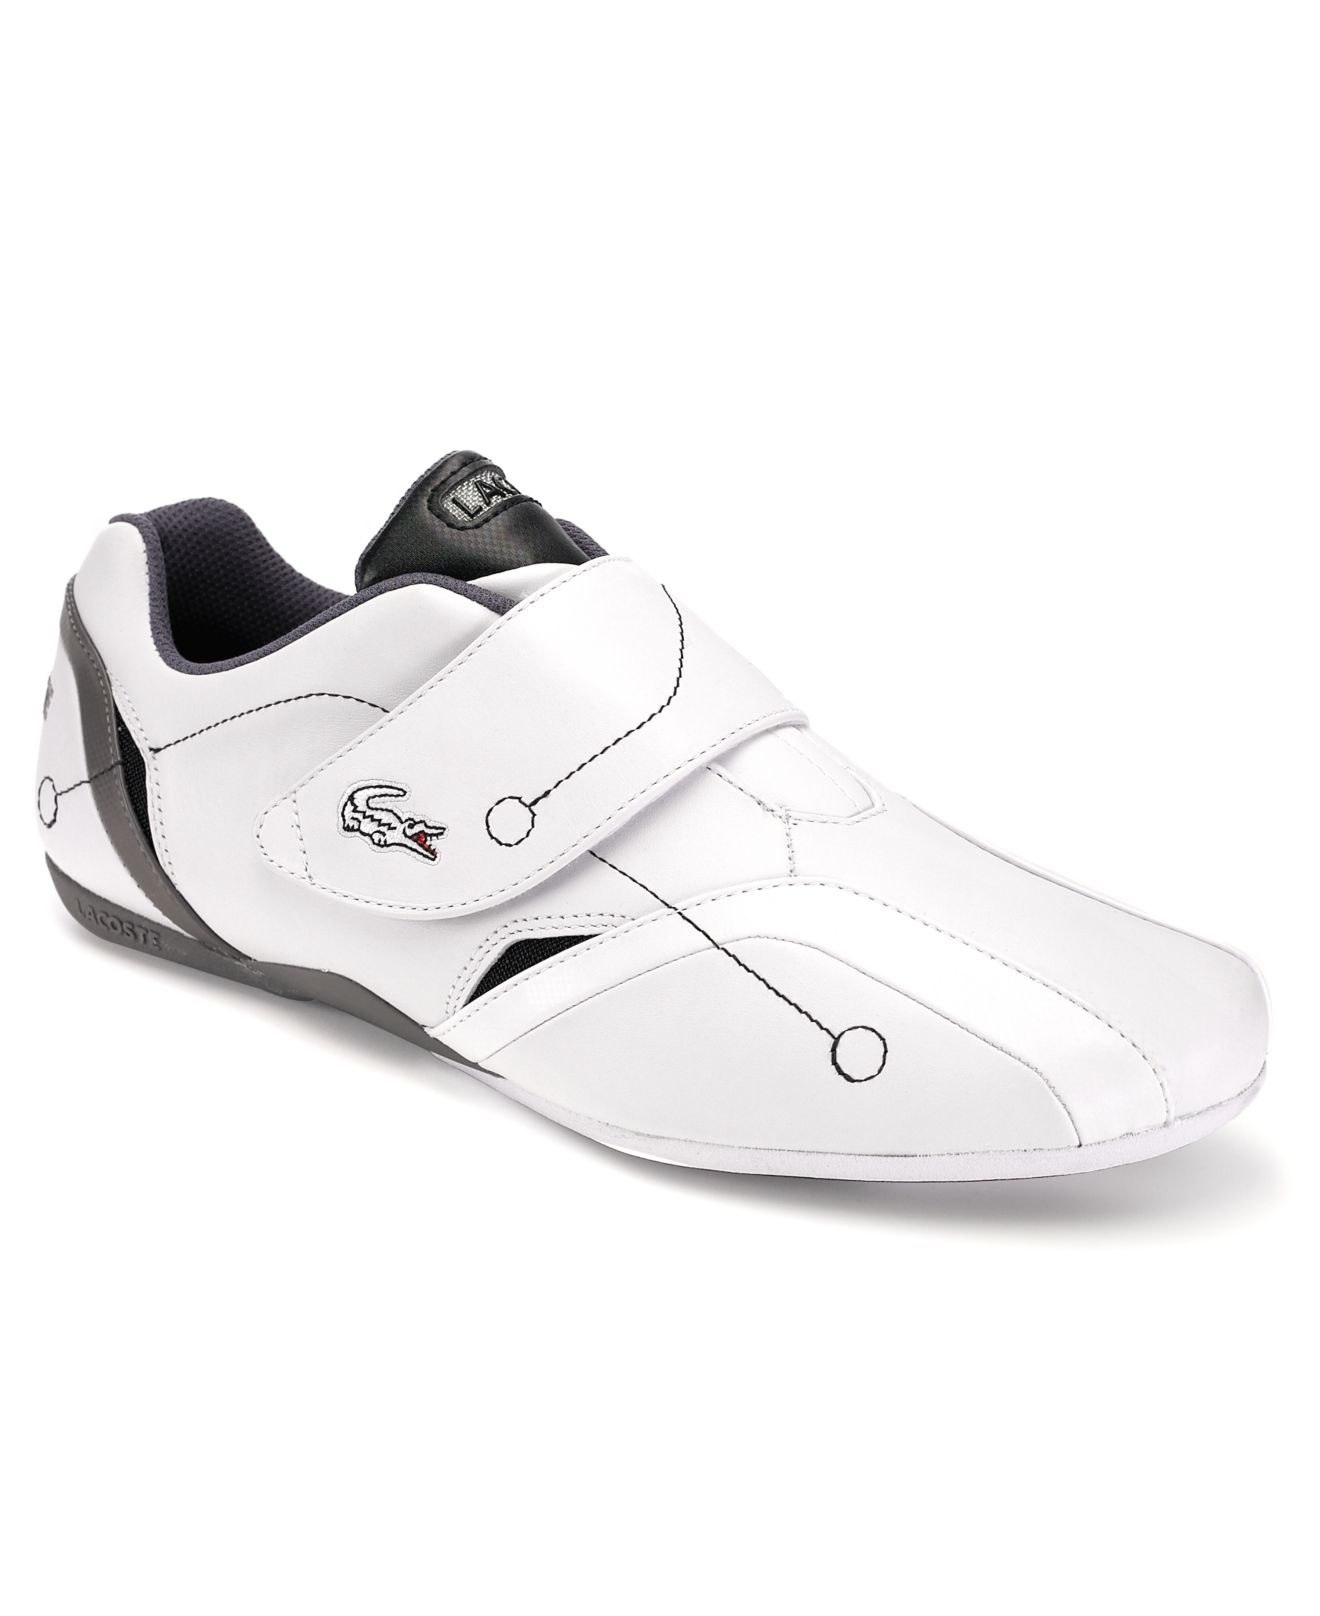 Lacoste Shoes, Protect M Sneakers- A Macy\u0027s Exclusive - Mens Shoes - Macy\u0027s